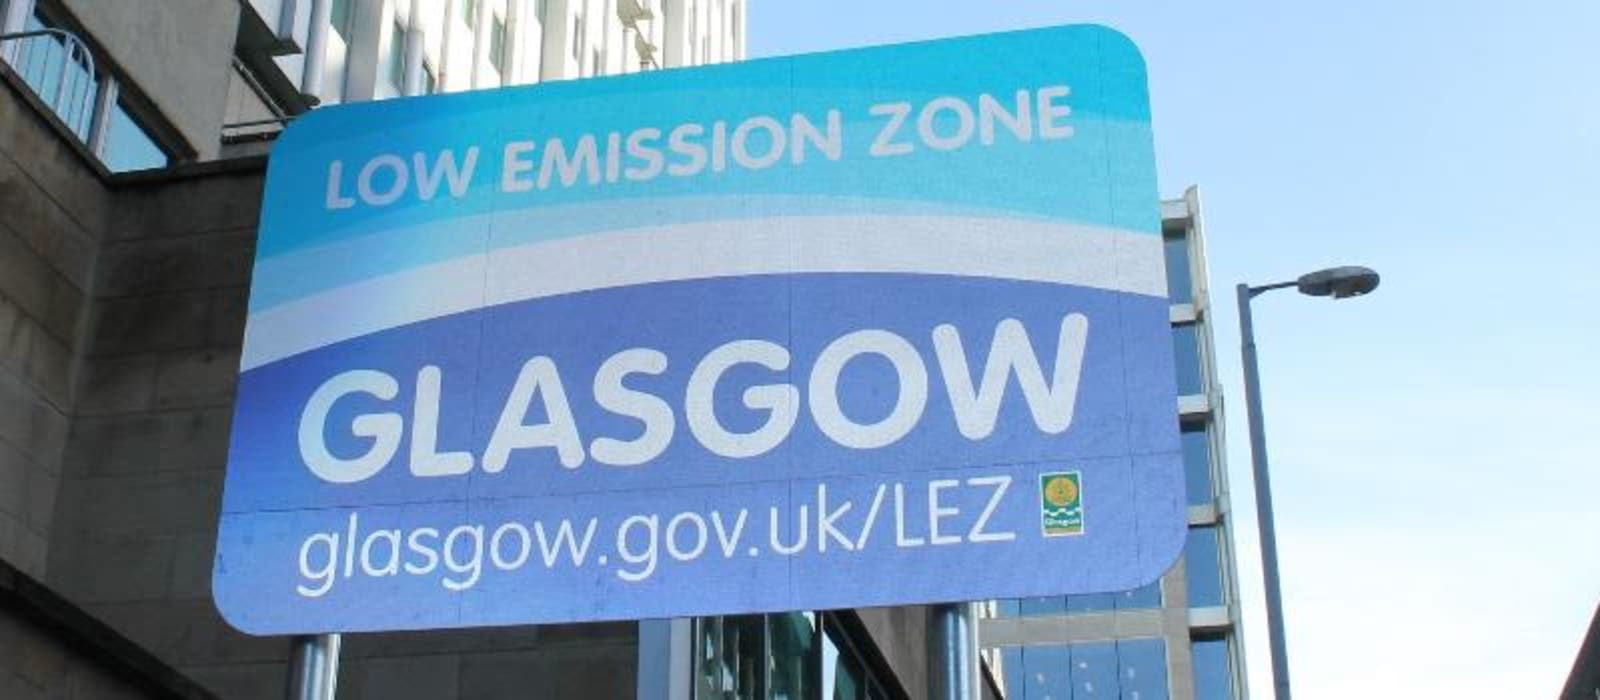 Glasgow Low Emission Zone comes into force